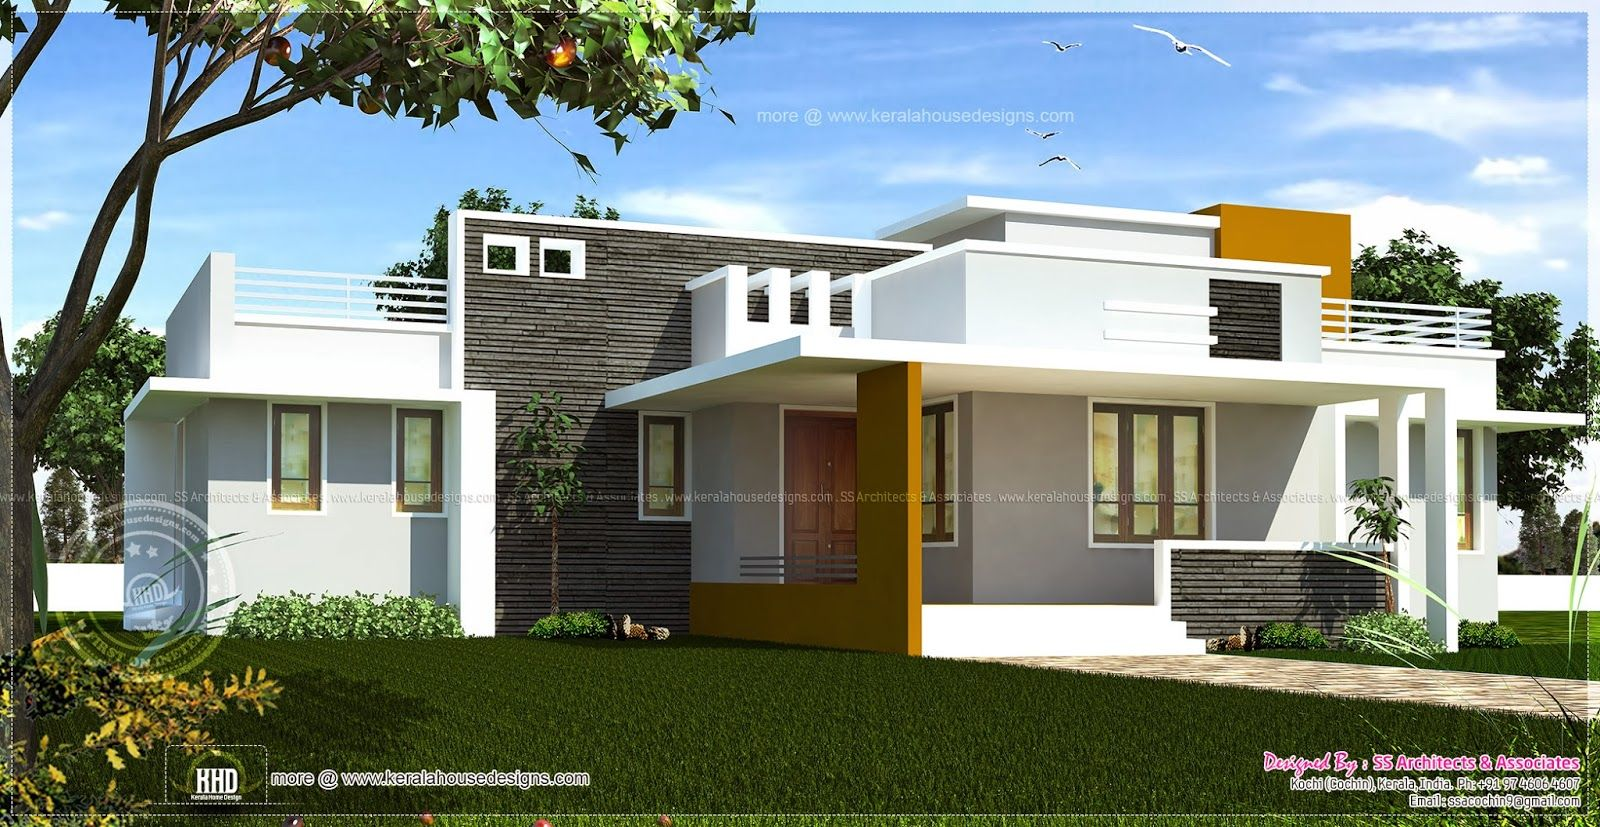 Excellent single home designs single floor contemporary for Single level house designs